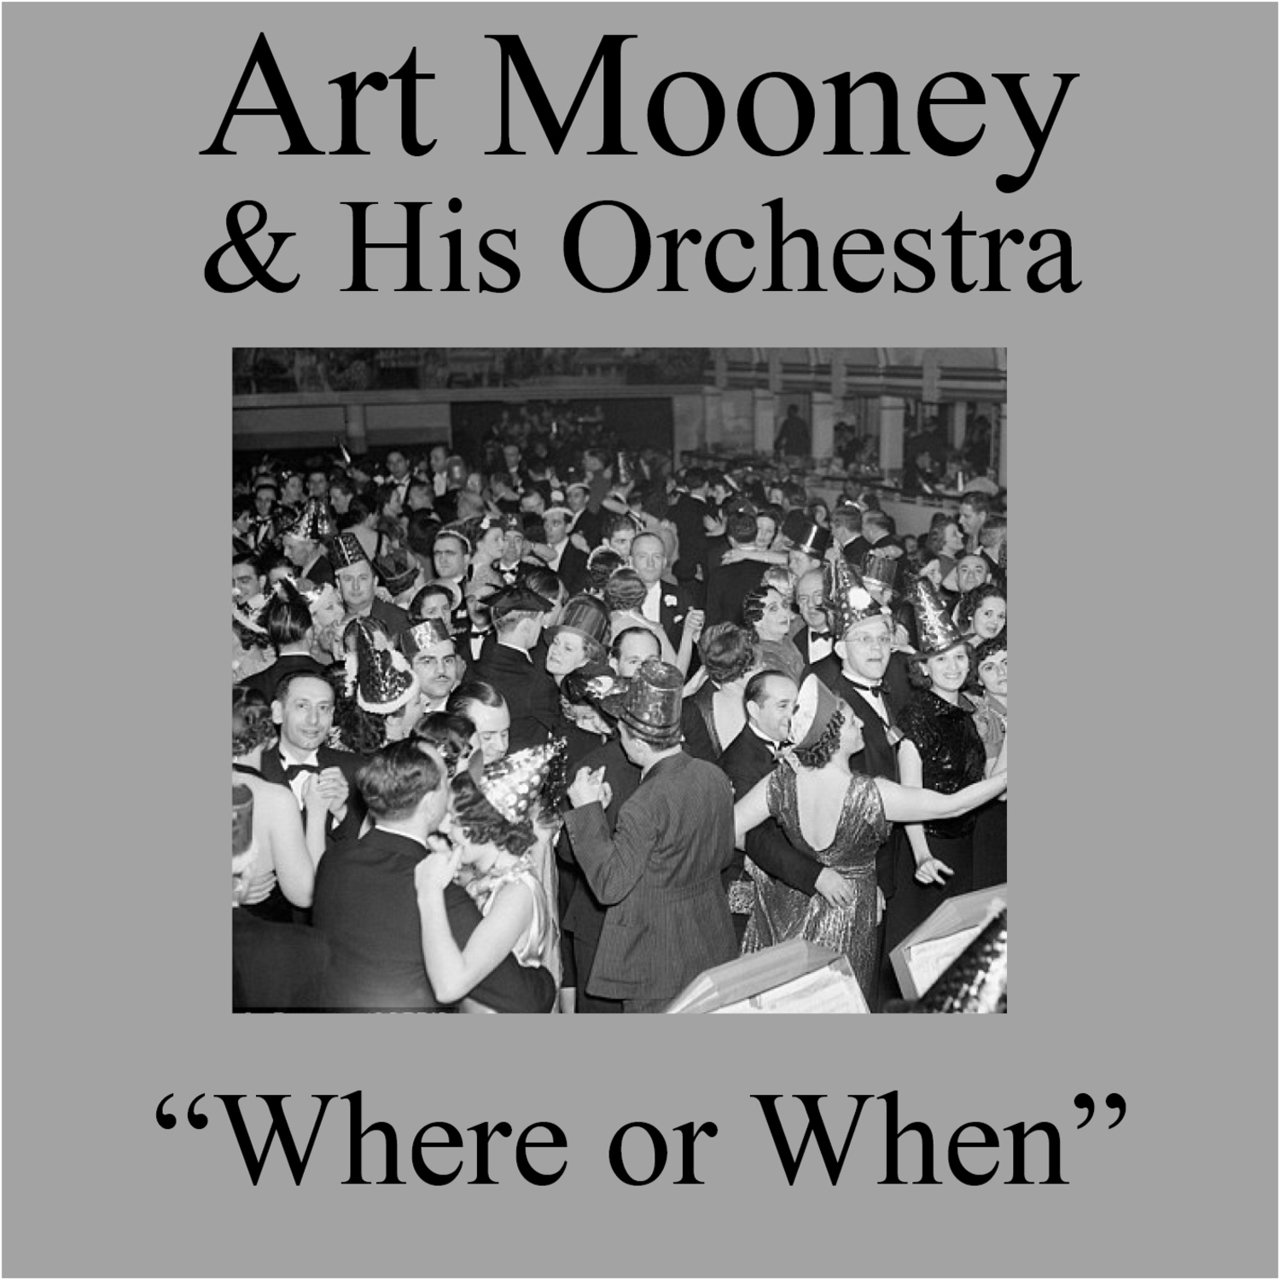 TIDAL: Listen to Art Mooney & His Orchestra on TIDAL